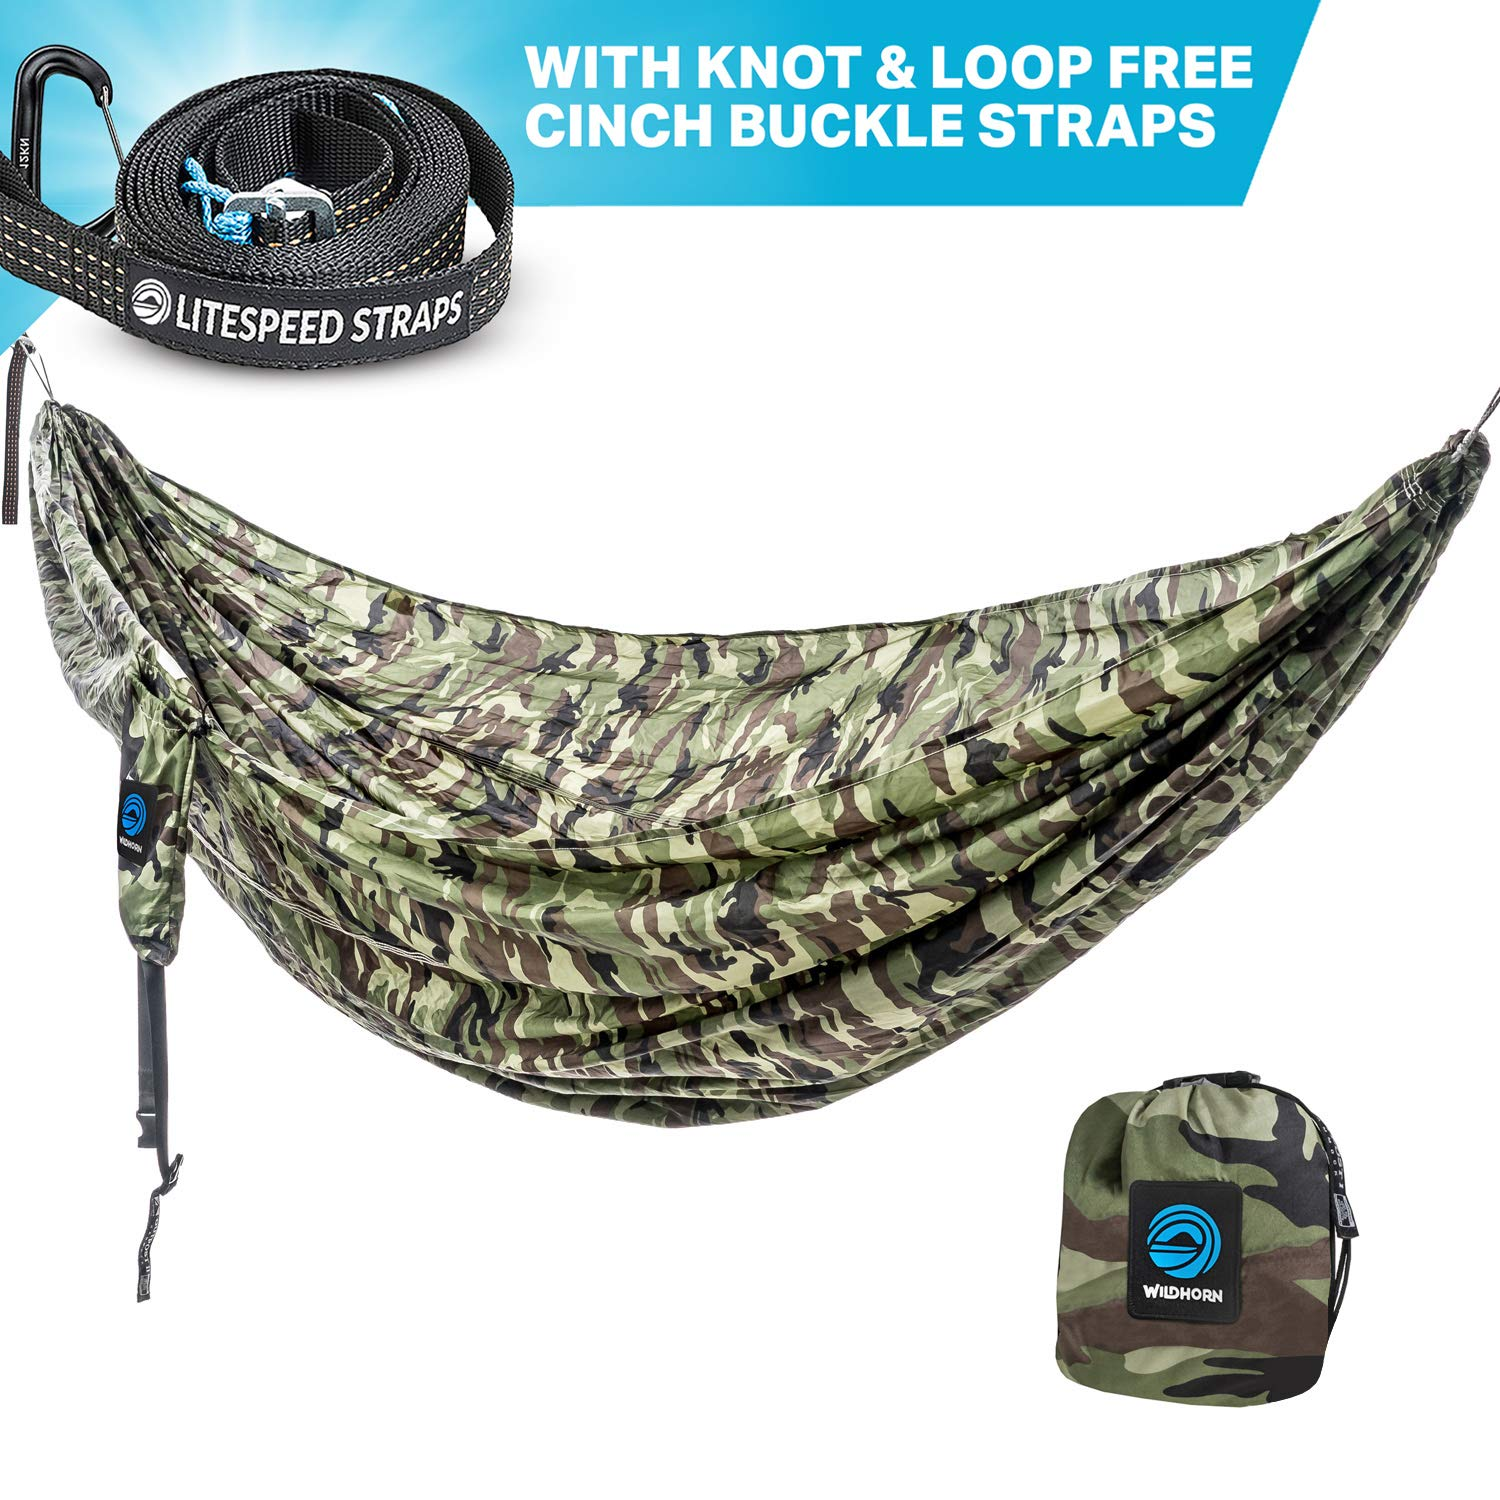 Wildhorn Outpost Double Single Portable Camping Hammock with Cinch Buckle Tree Straps